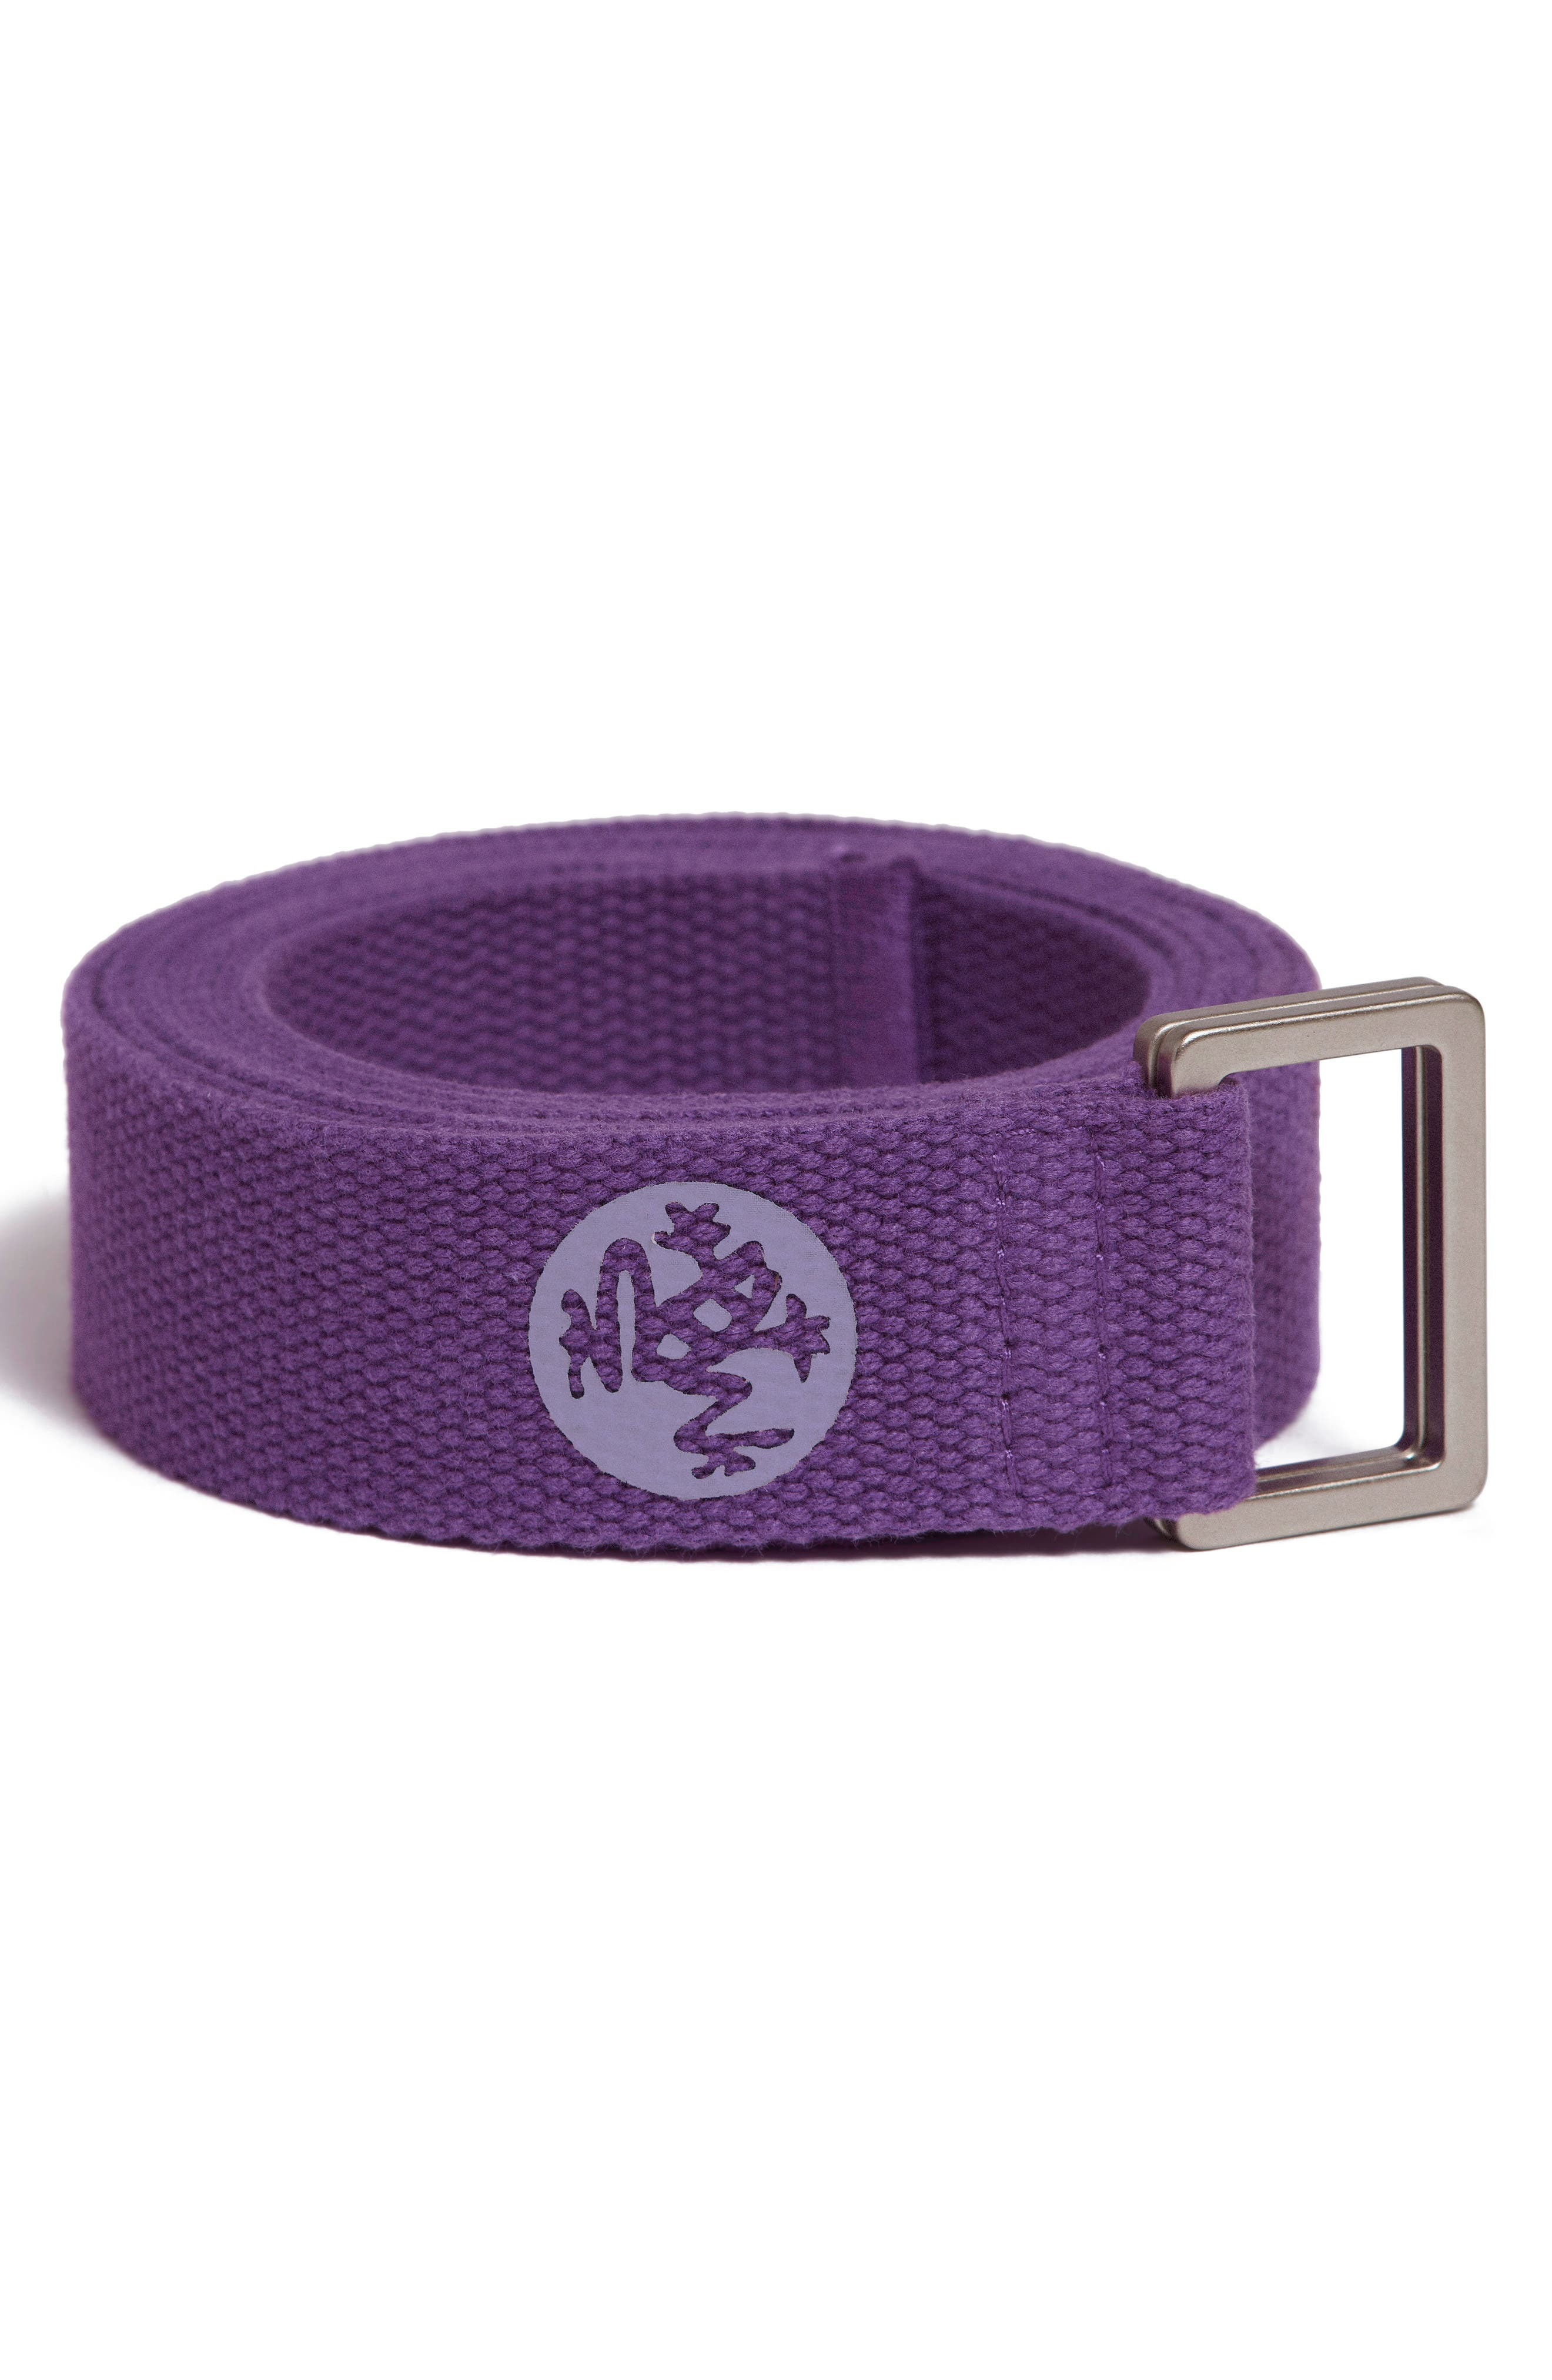 Unfold 2.0 Yoga Strap,                         Main,                         color, Intuition